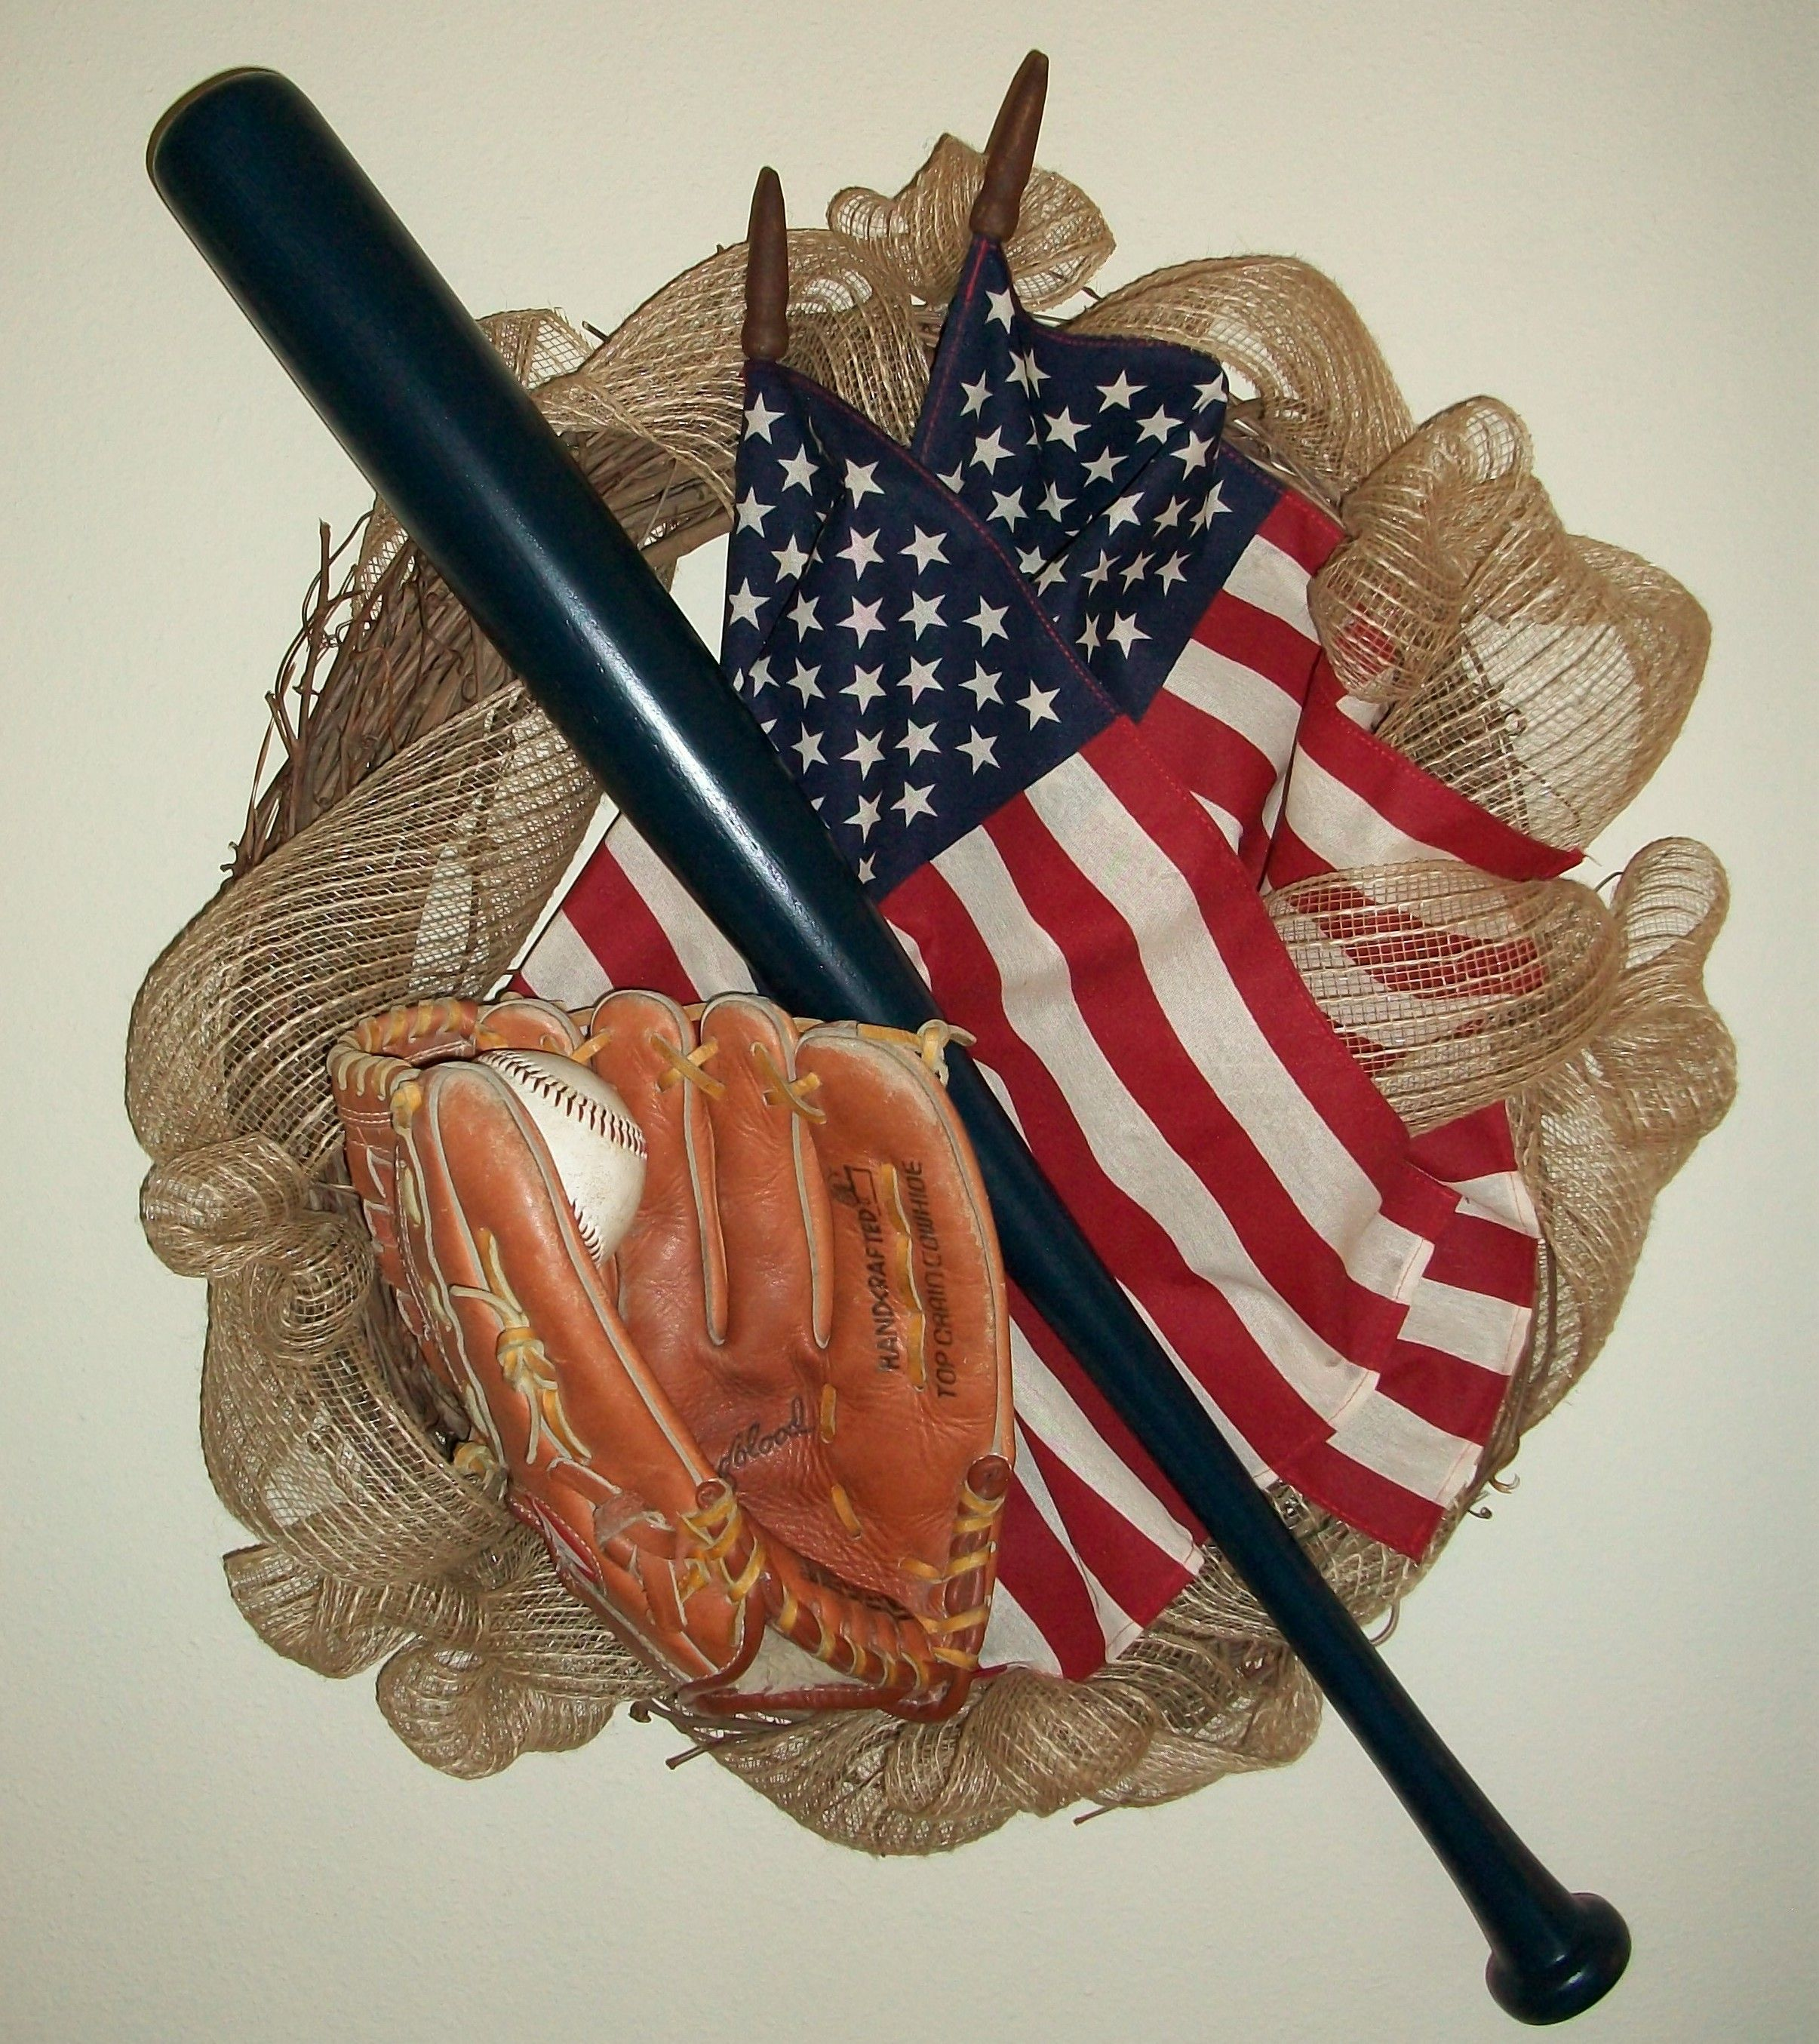 Batter up! Nothing says summer like the sound of the bat hitting a ball. For the baseball lover - this wreath is classic American spirit. American flags on a grapevine wreath with burlap, authentic wood bat, leather glove, and real ball.  MLB, Little League, Legion Baseball, Americana, Patriotic.